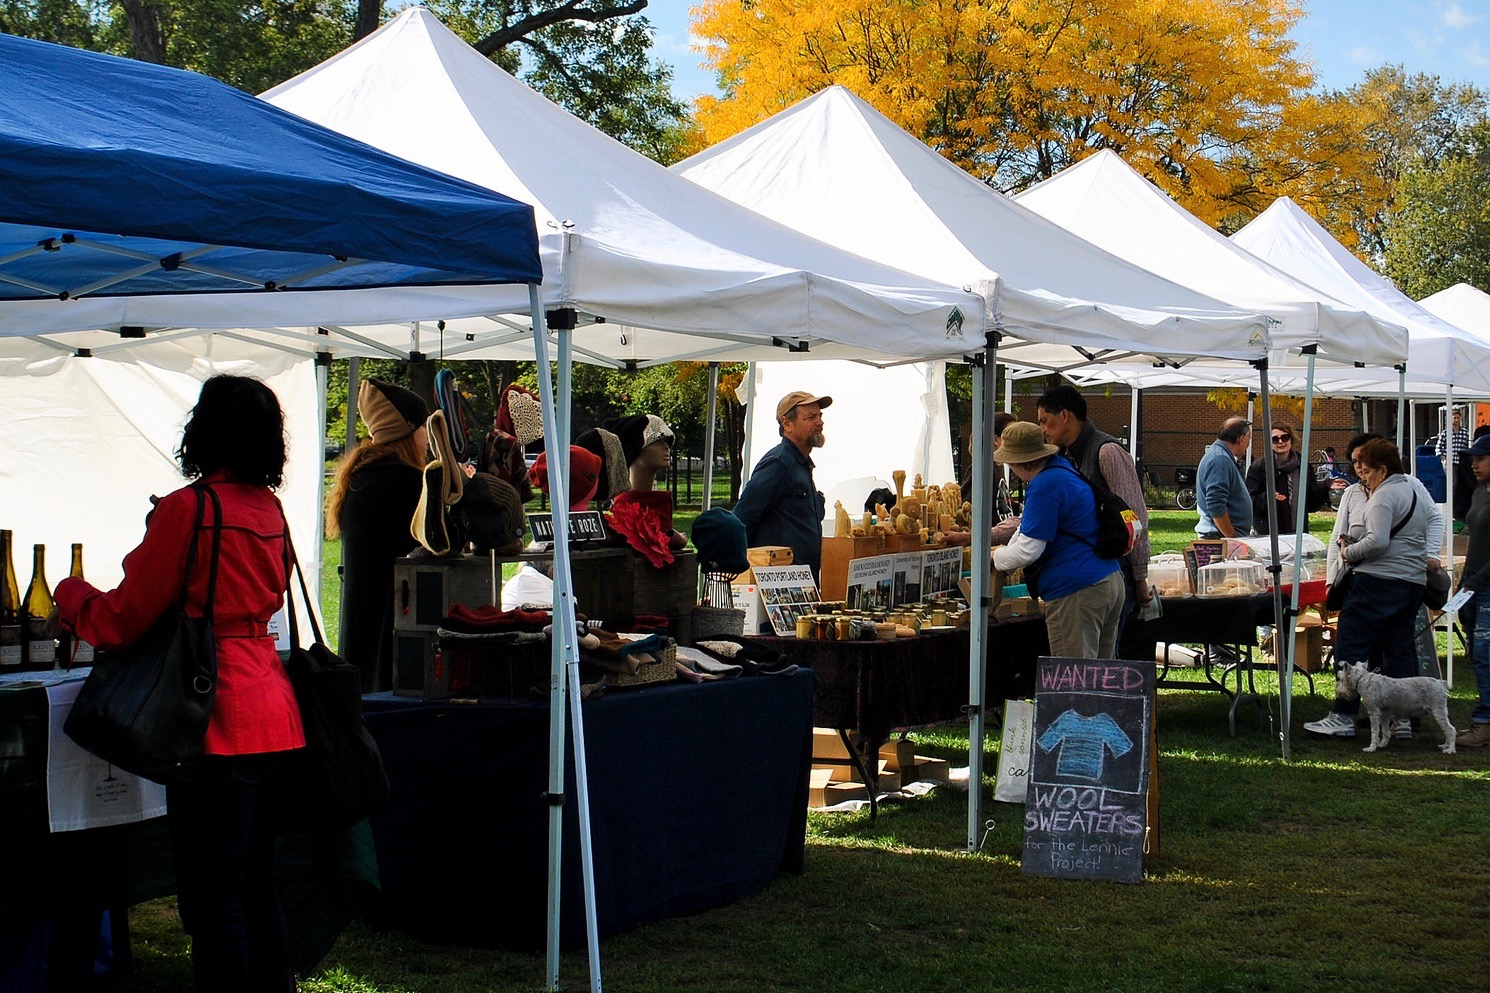 Farmers u0026 Vendors 2017 & Farmers u0026 Vendors 2017 | Withrow Park Farmersu0027 Market